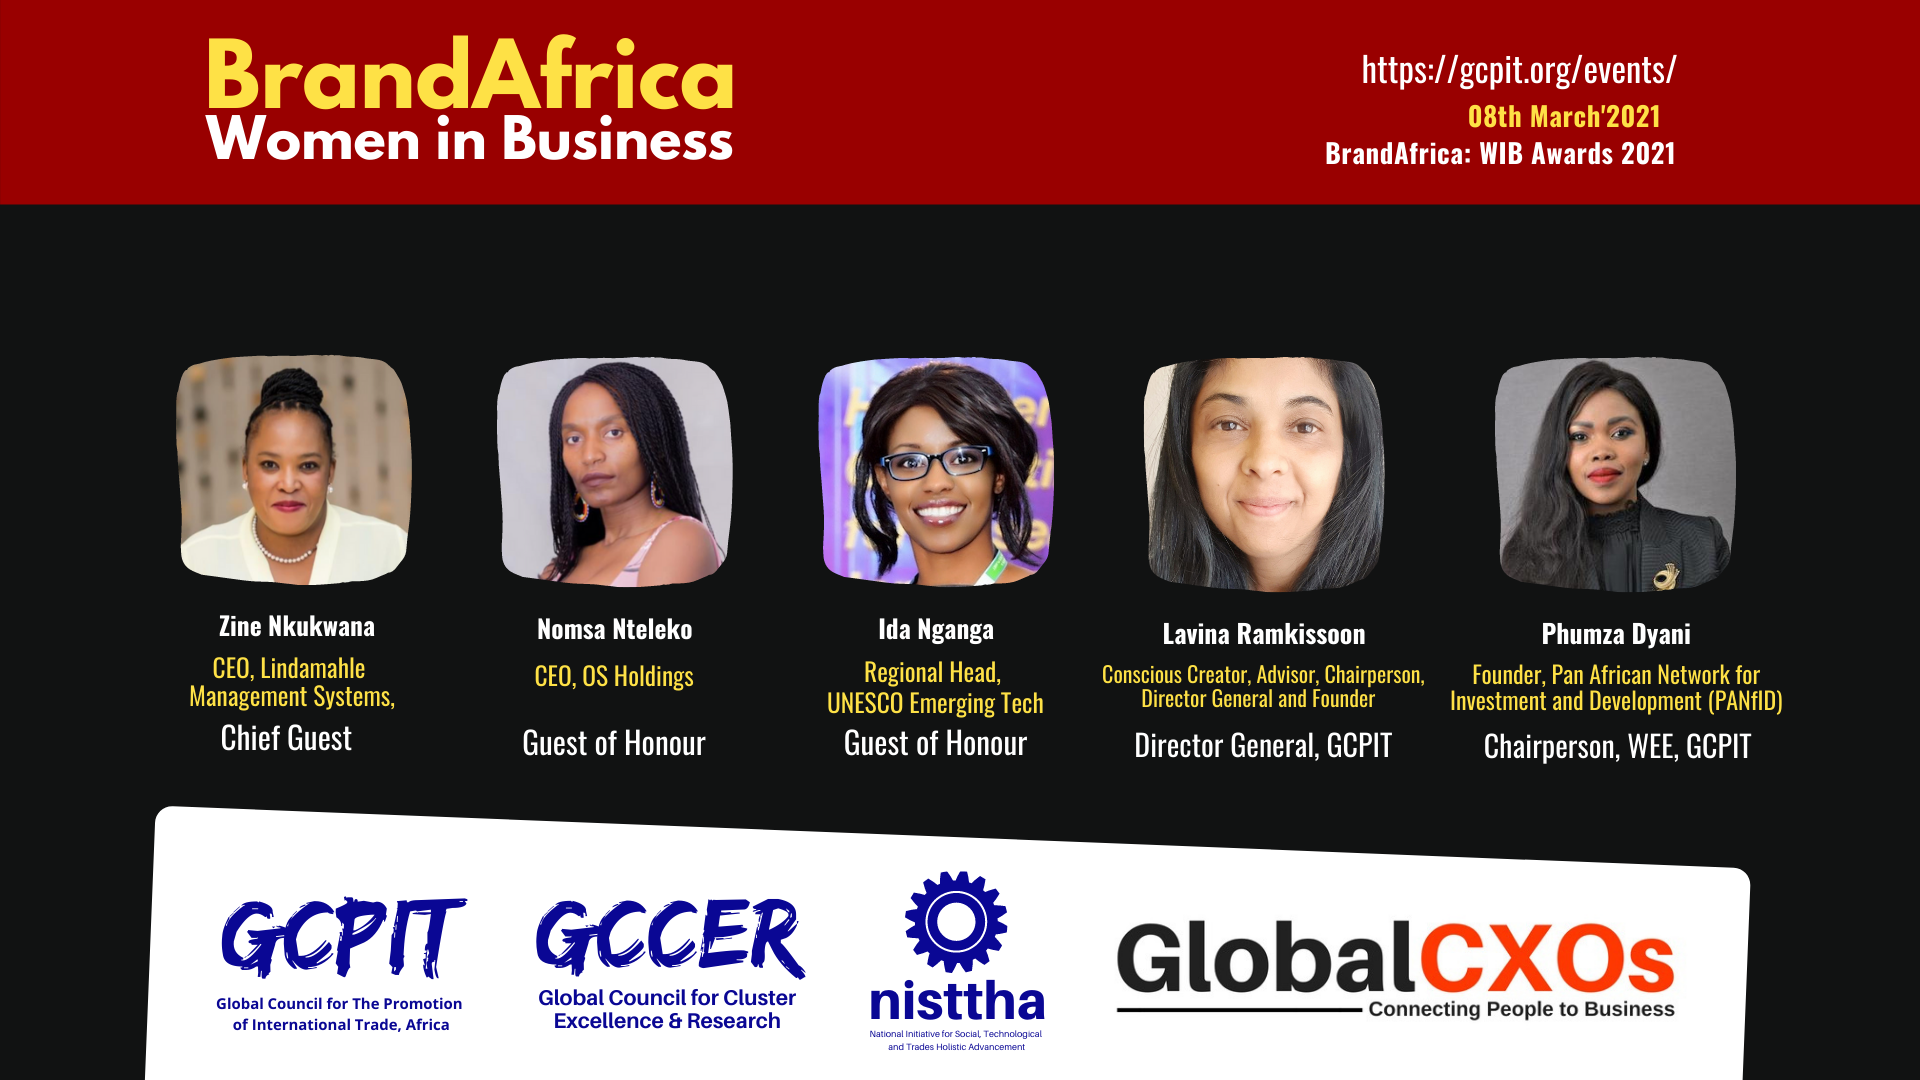 GCPIT South Africa honours twenty women entrepreneurs with BrandAfrica: Women in Business Awards 2021